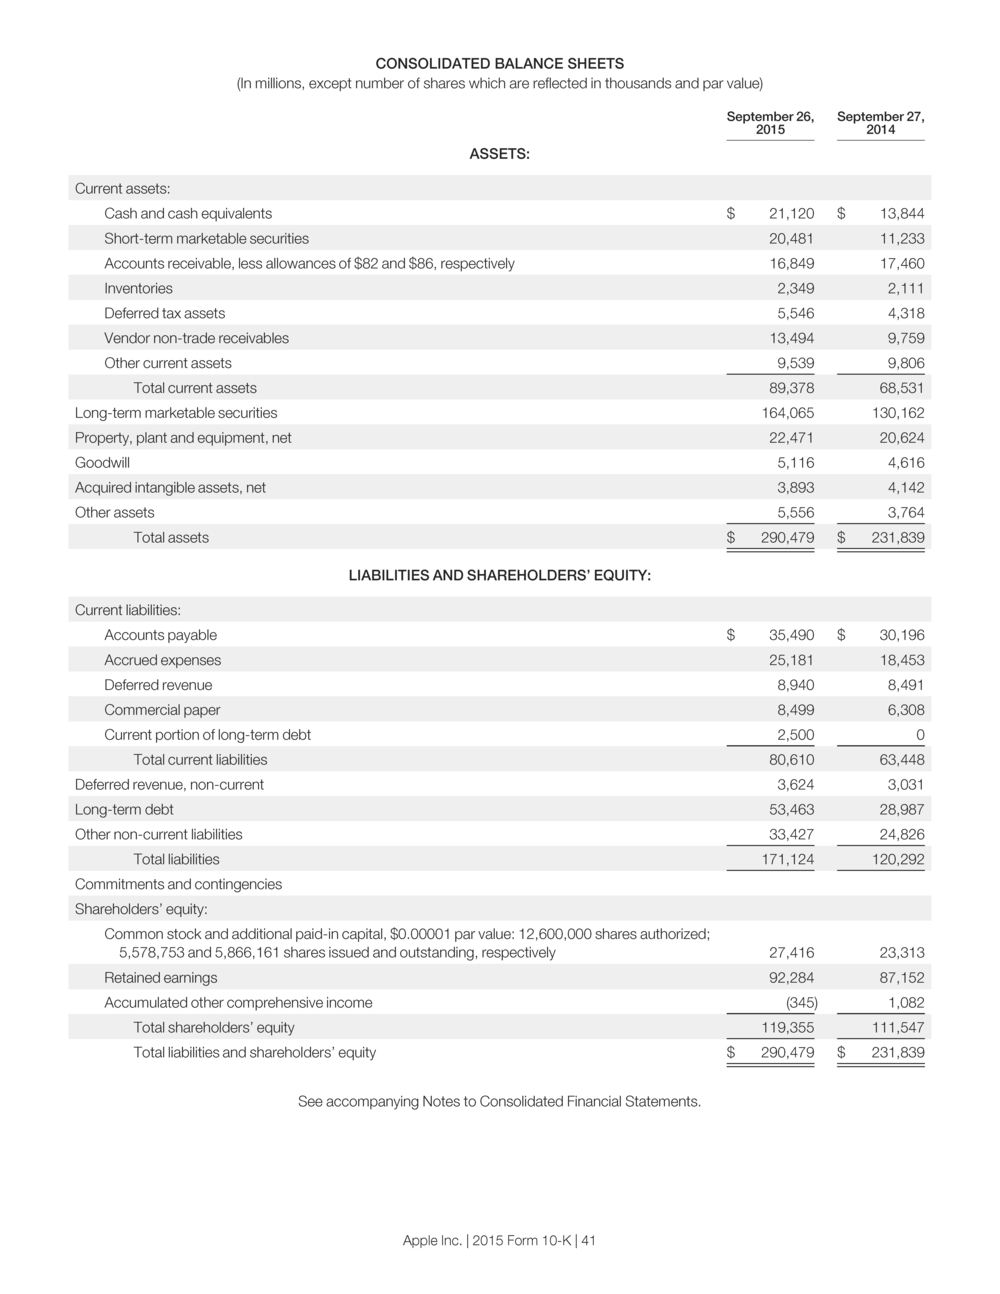 Apple's 2015 Balance Sheet